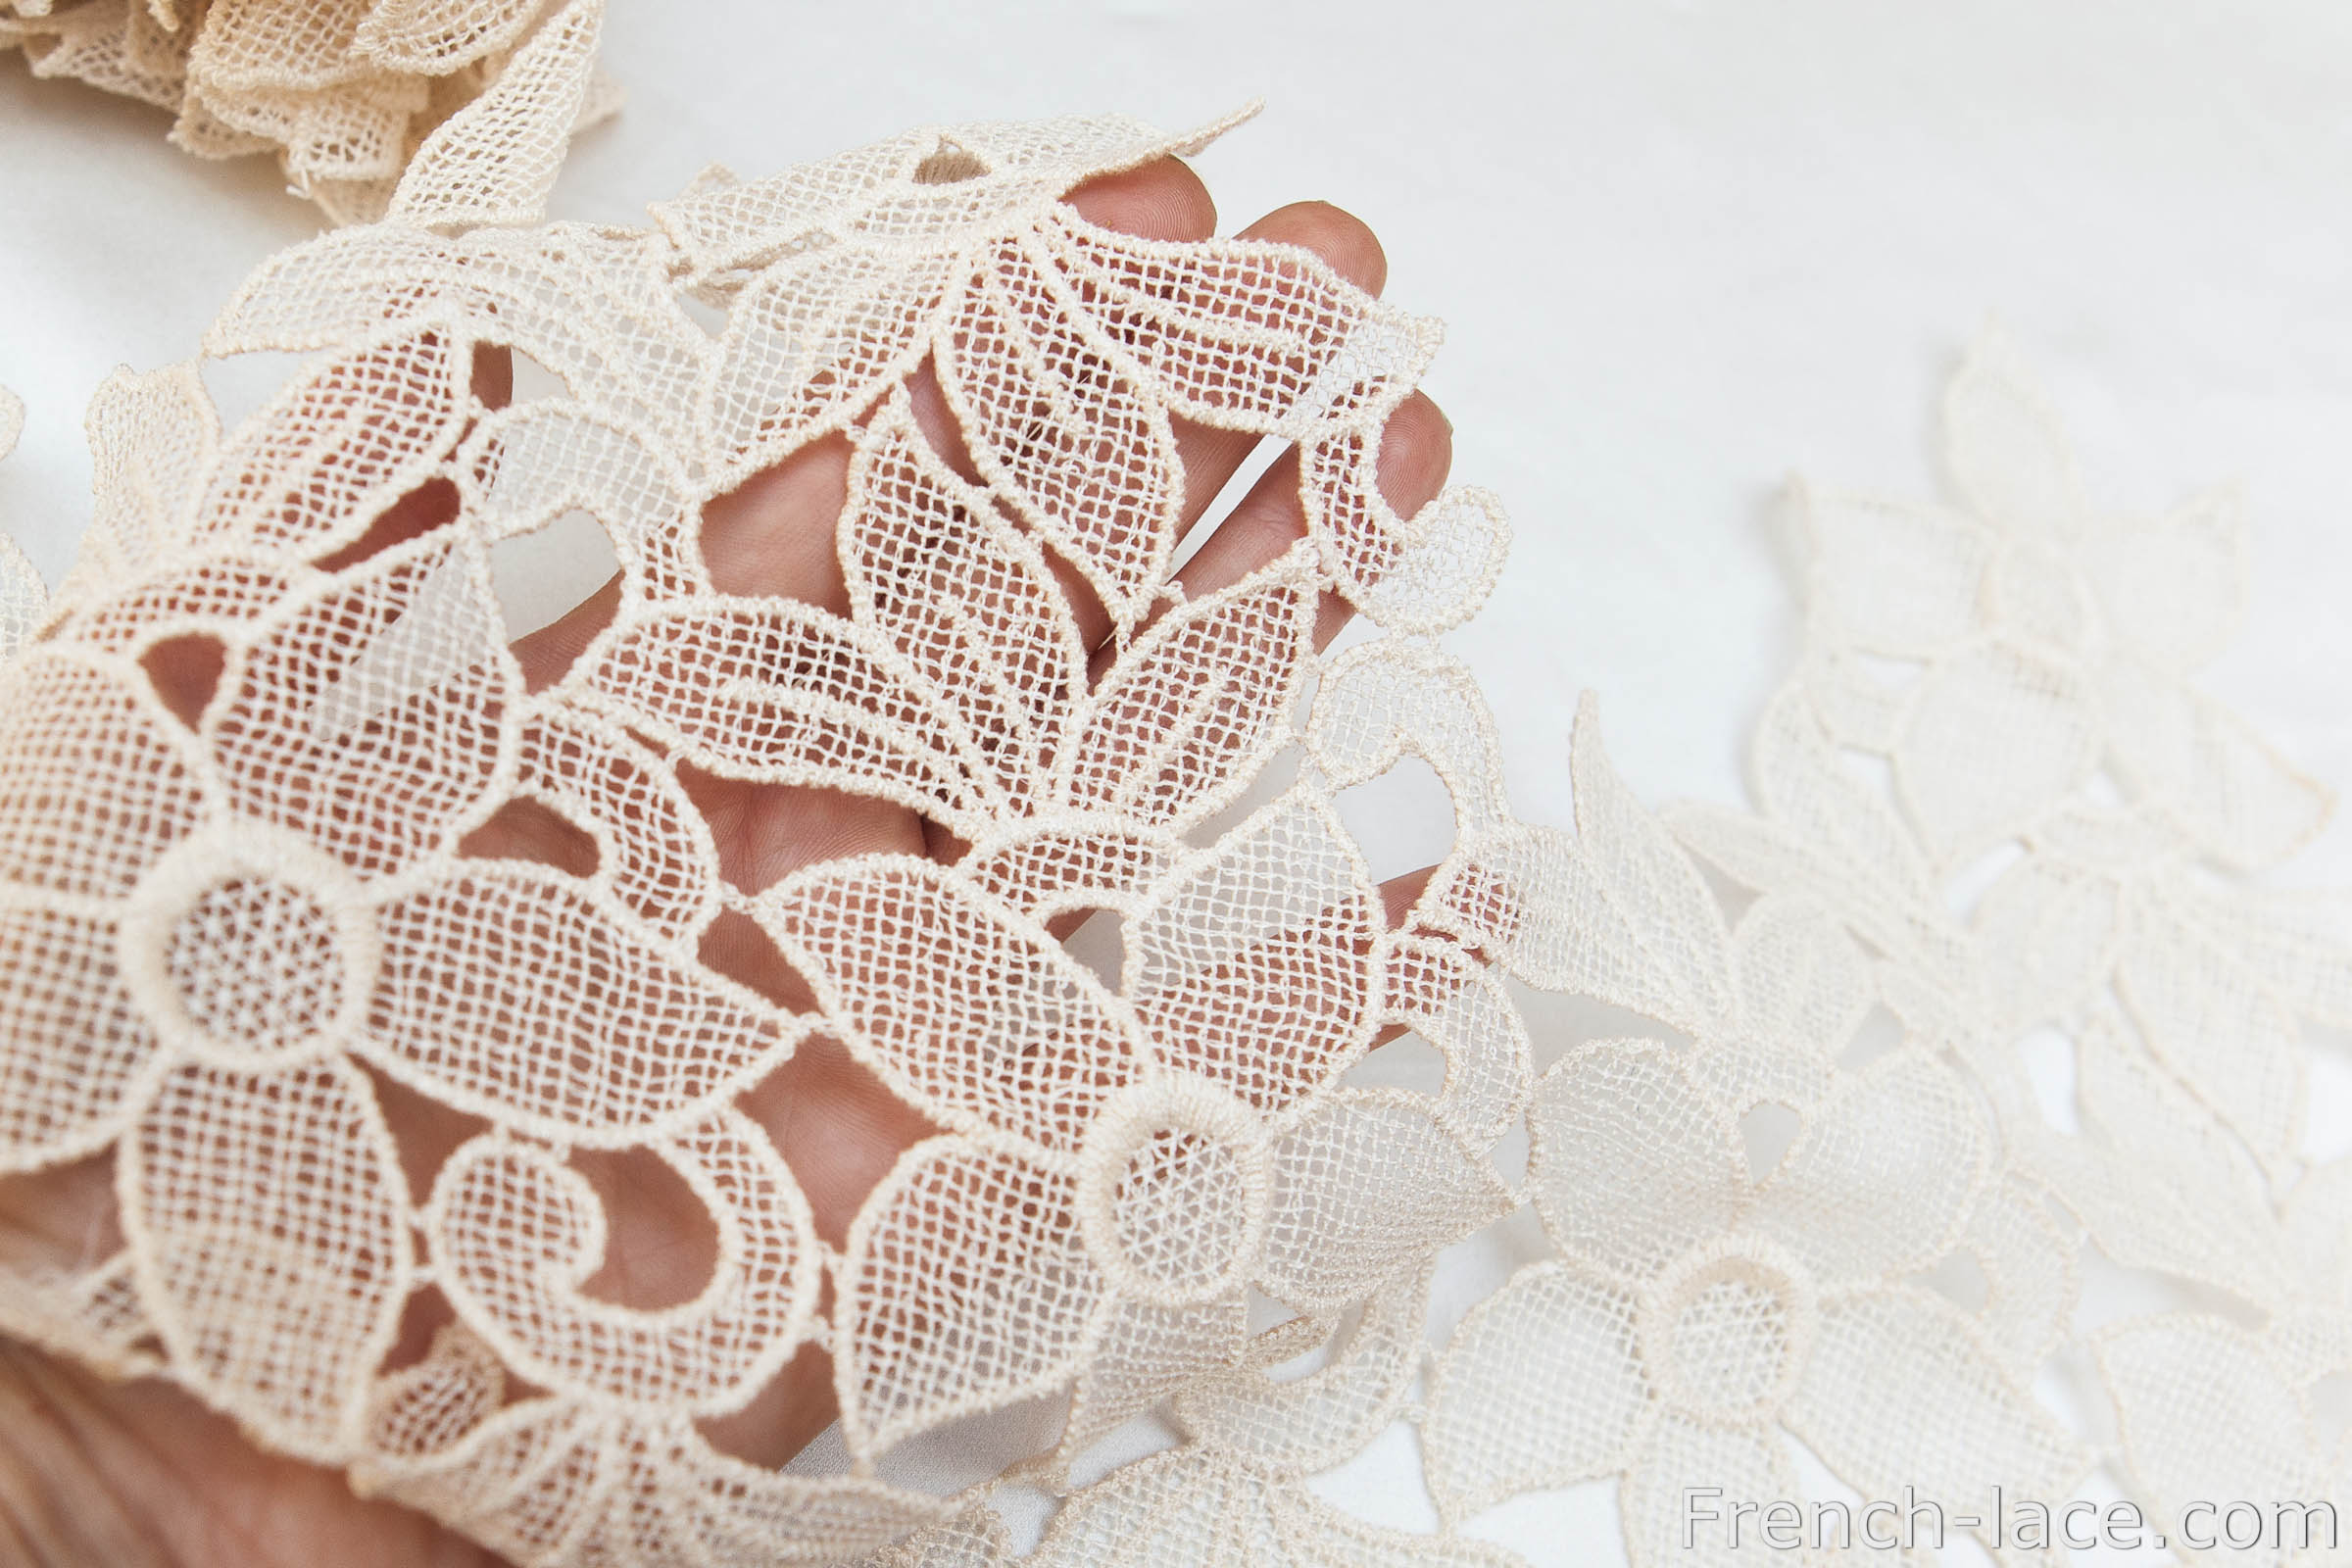 Beige macrame lace, can be cut into appliques.